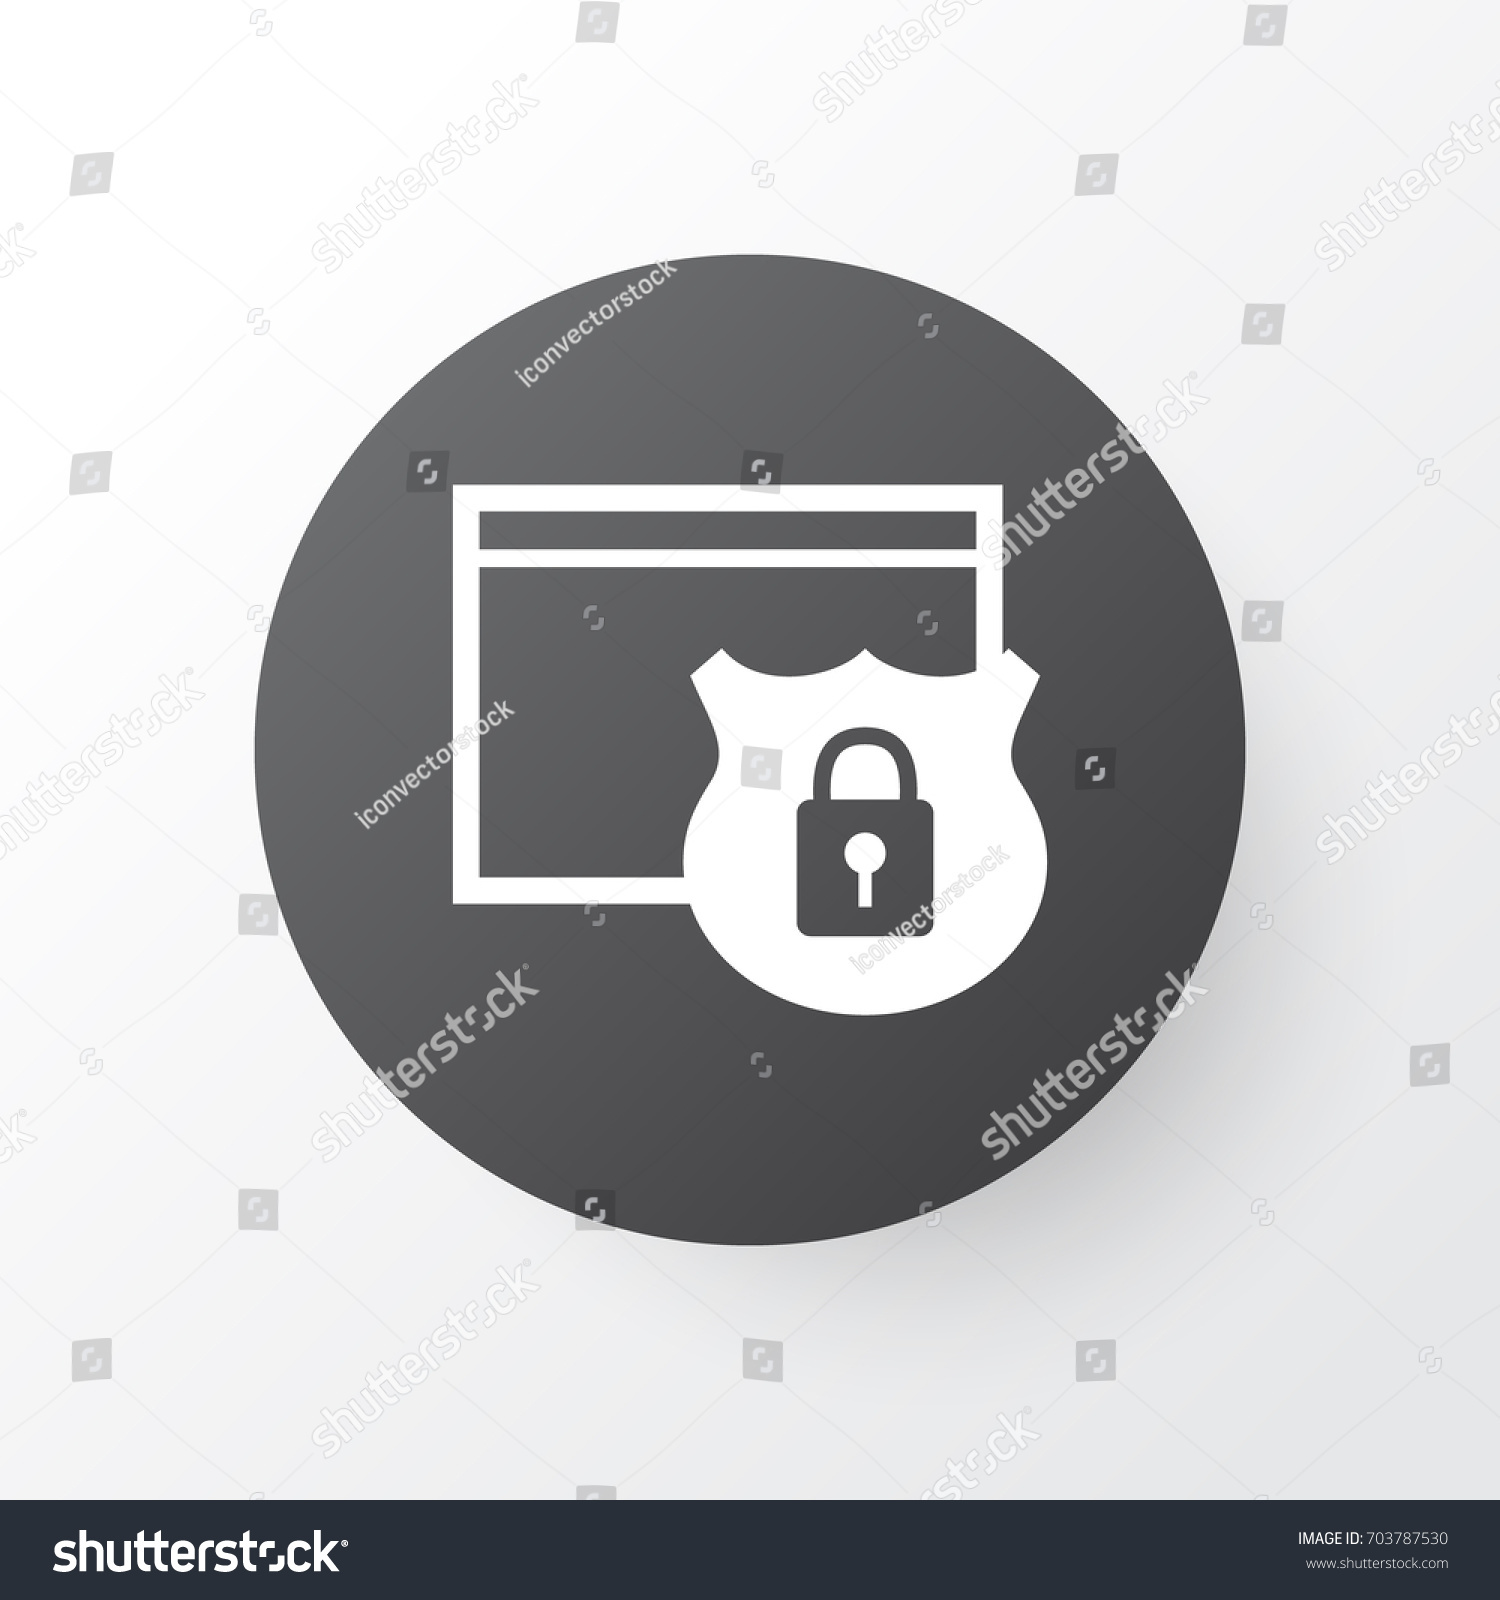 Secure website symbol images symbol and sign ideas website protection icon symbol premium quality stock vector website protection icon symbol premium quality isolated security biocorpaavc